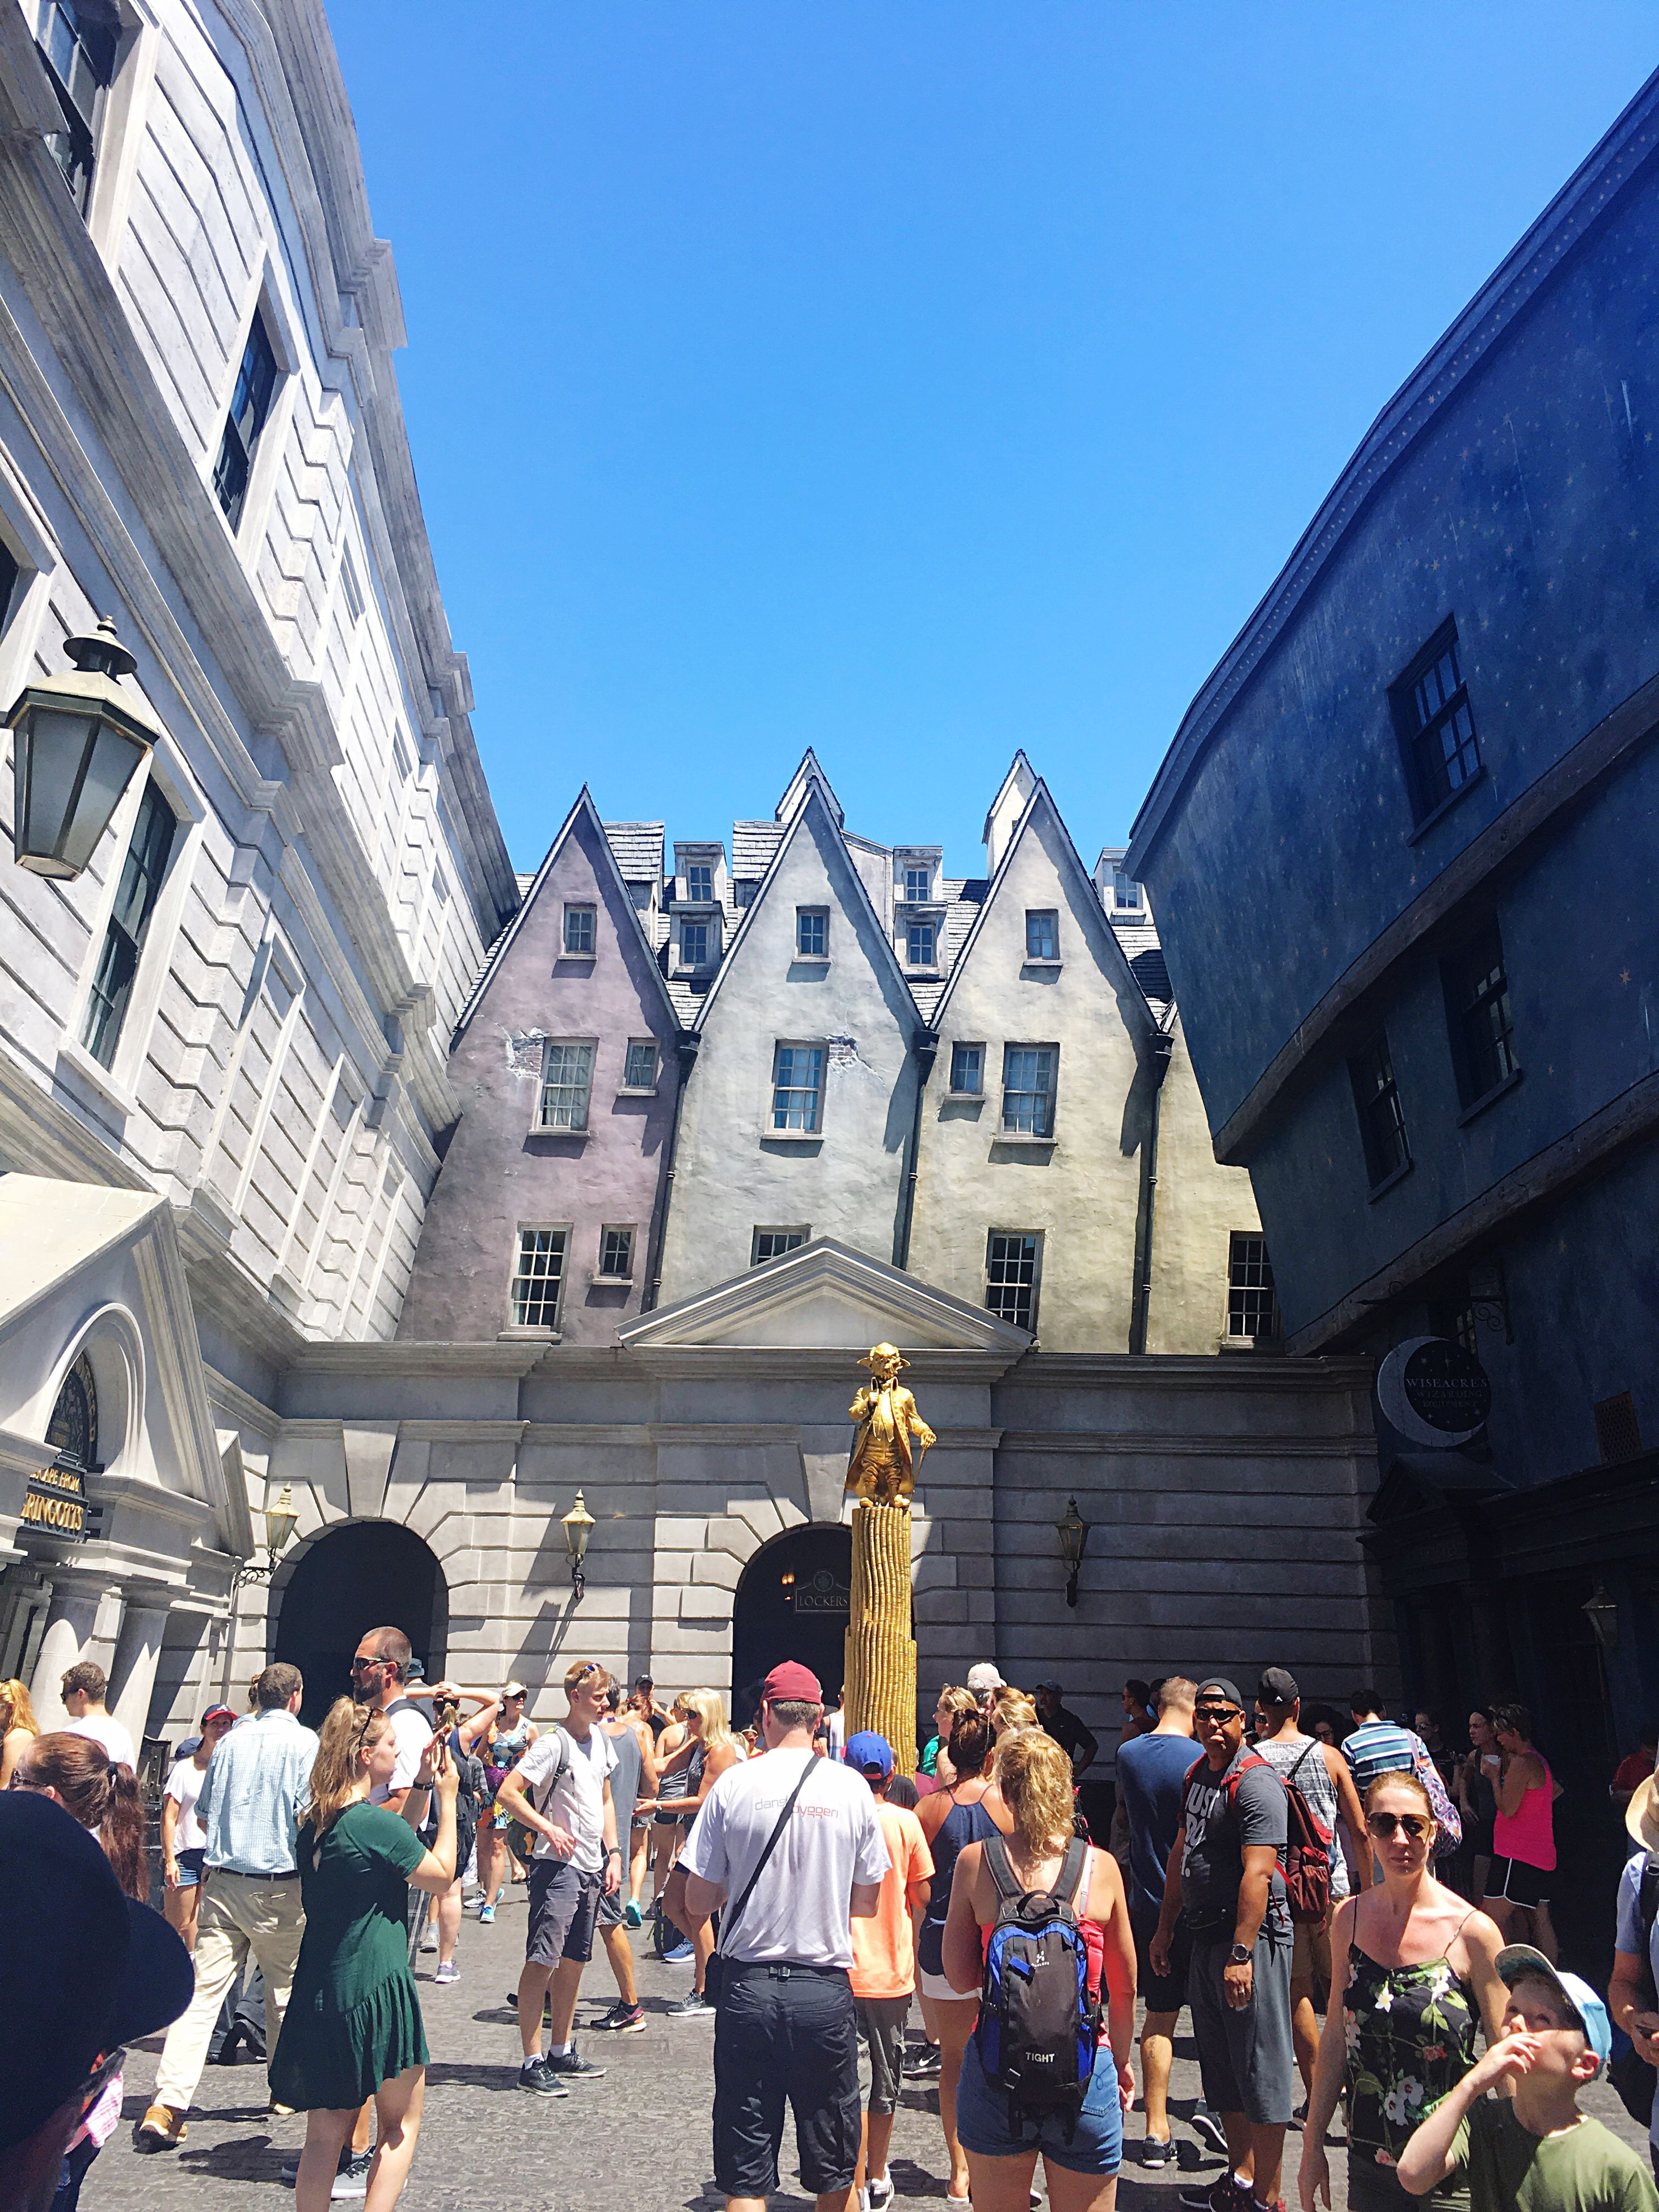 architecture, building exterior, built structure, large group of people, real people, day, outdoors, statue, men, women, sculpture, sunlight, city, city life, lifestyles, travel destinations, clear sky, sky, people